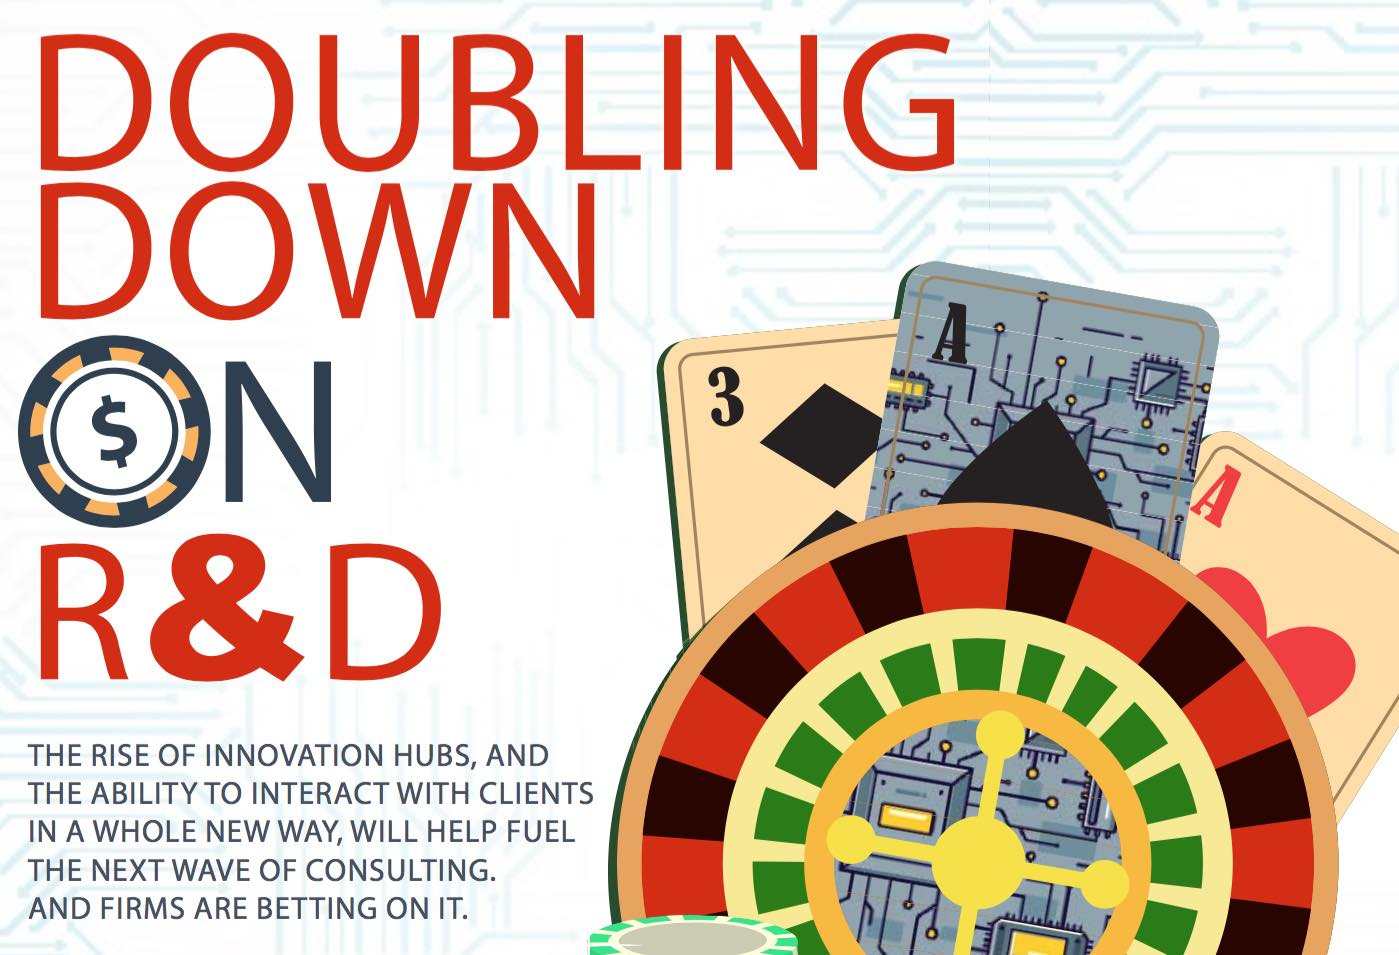 Trend Watch: Doubling Down on R&D—Firms are Betting Innovation Hubs Will Fuel the Next Wave of Consulting